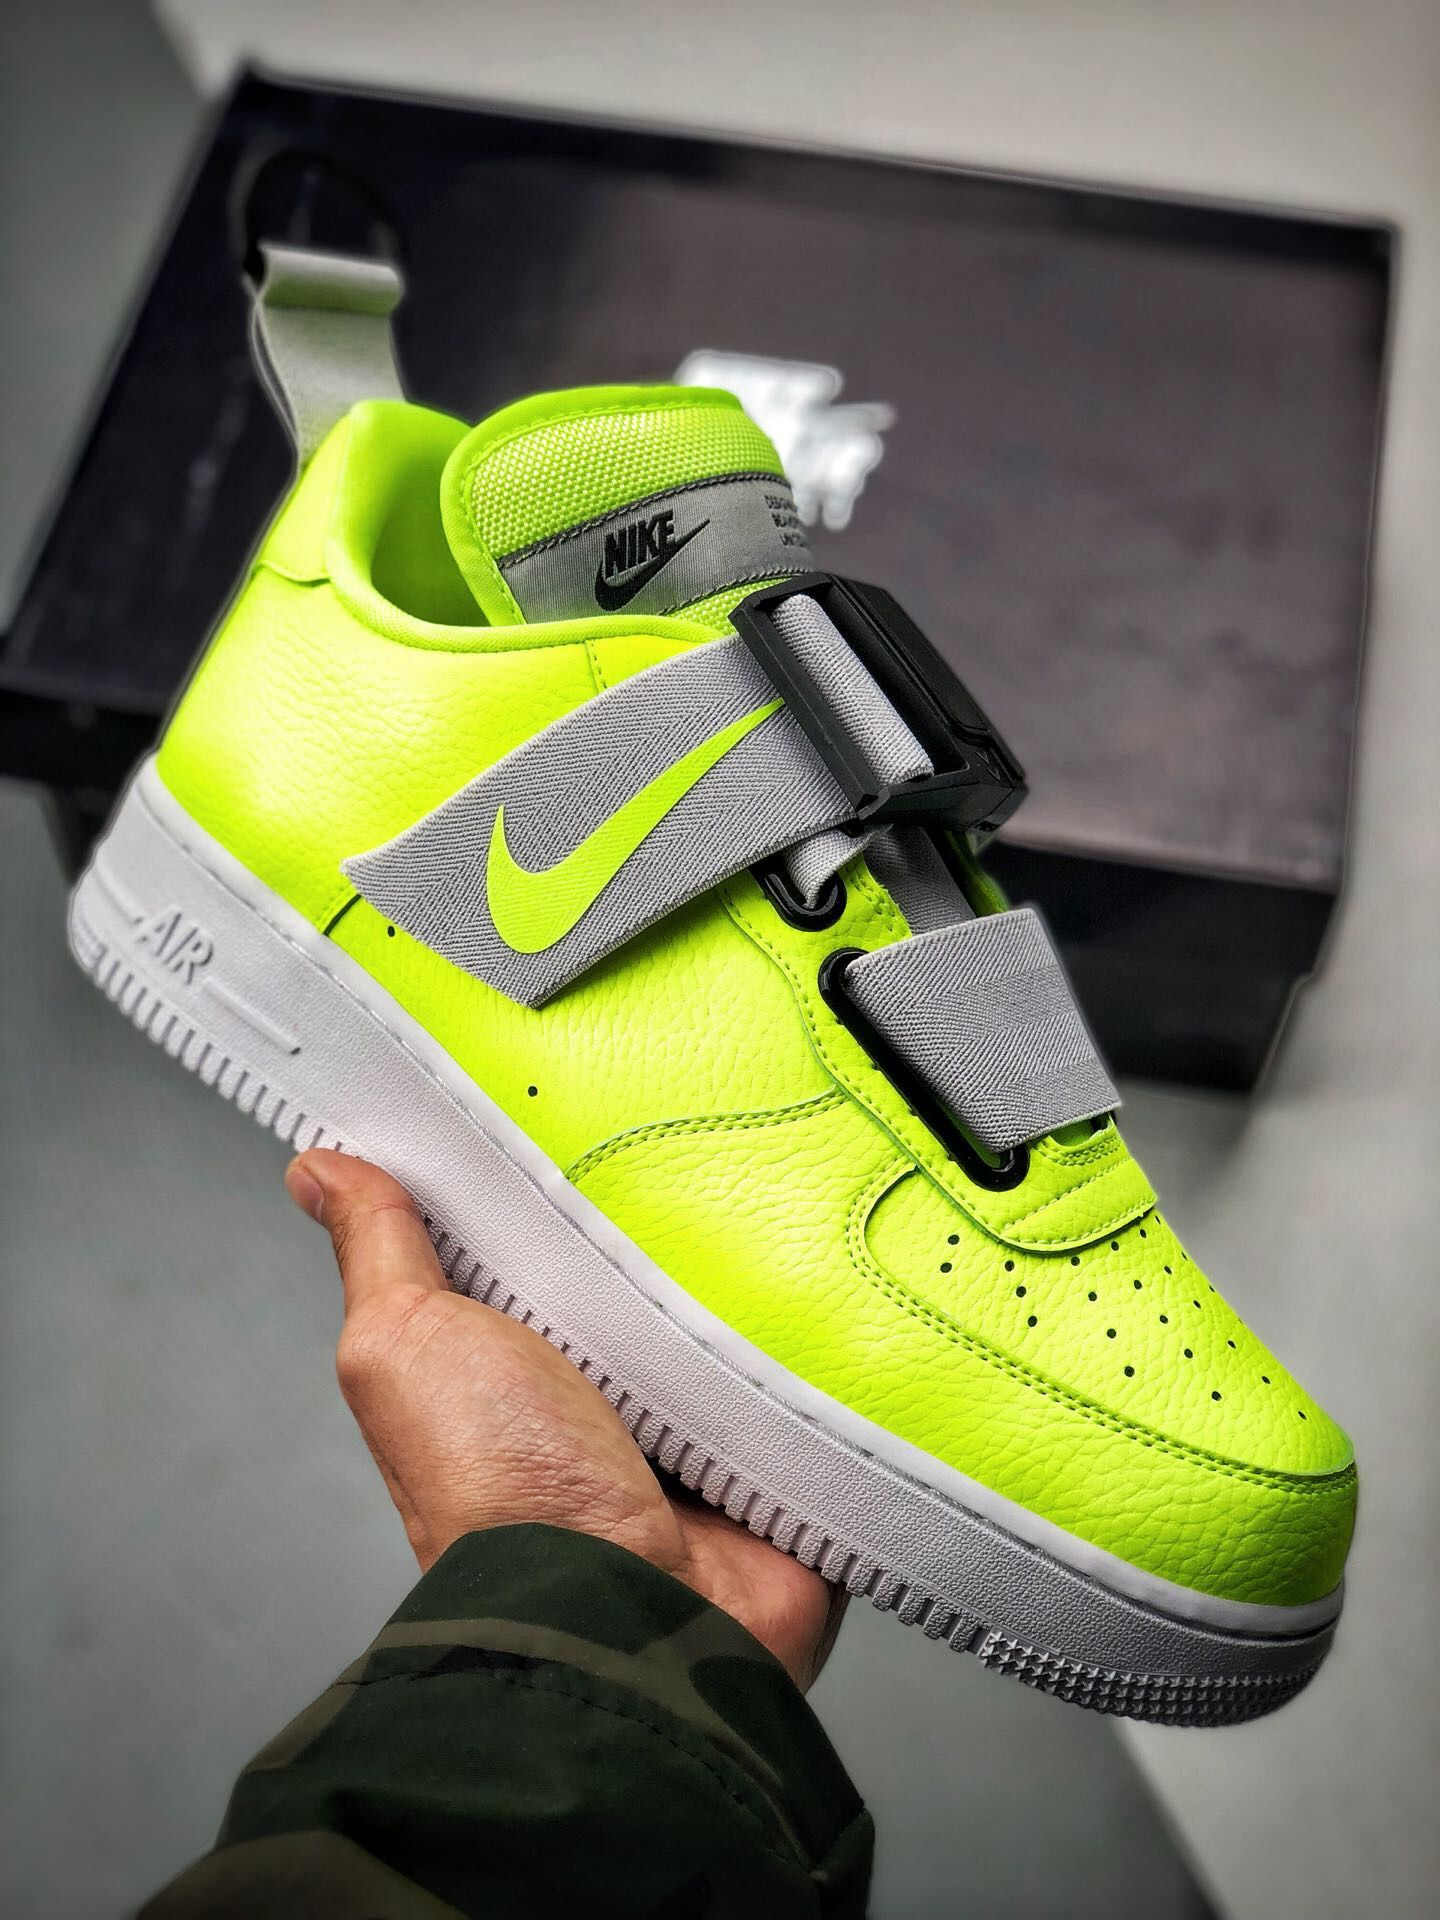 142d17a373 2019的NIKE AIR FORCE 1 Utility QS AO1531-700 | NIKE | Nike air force ...